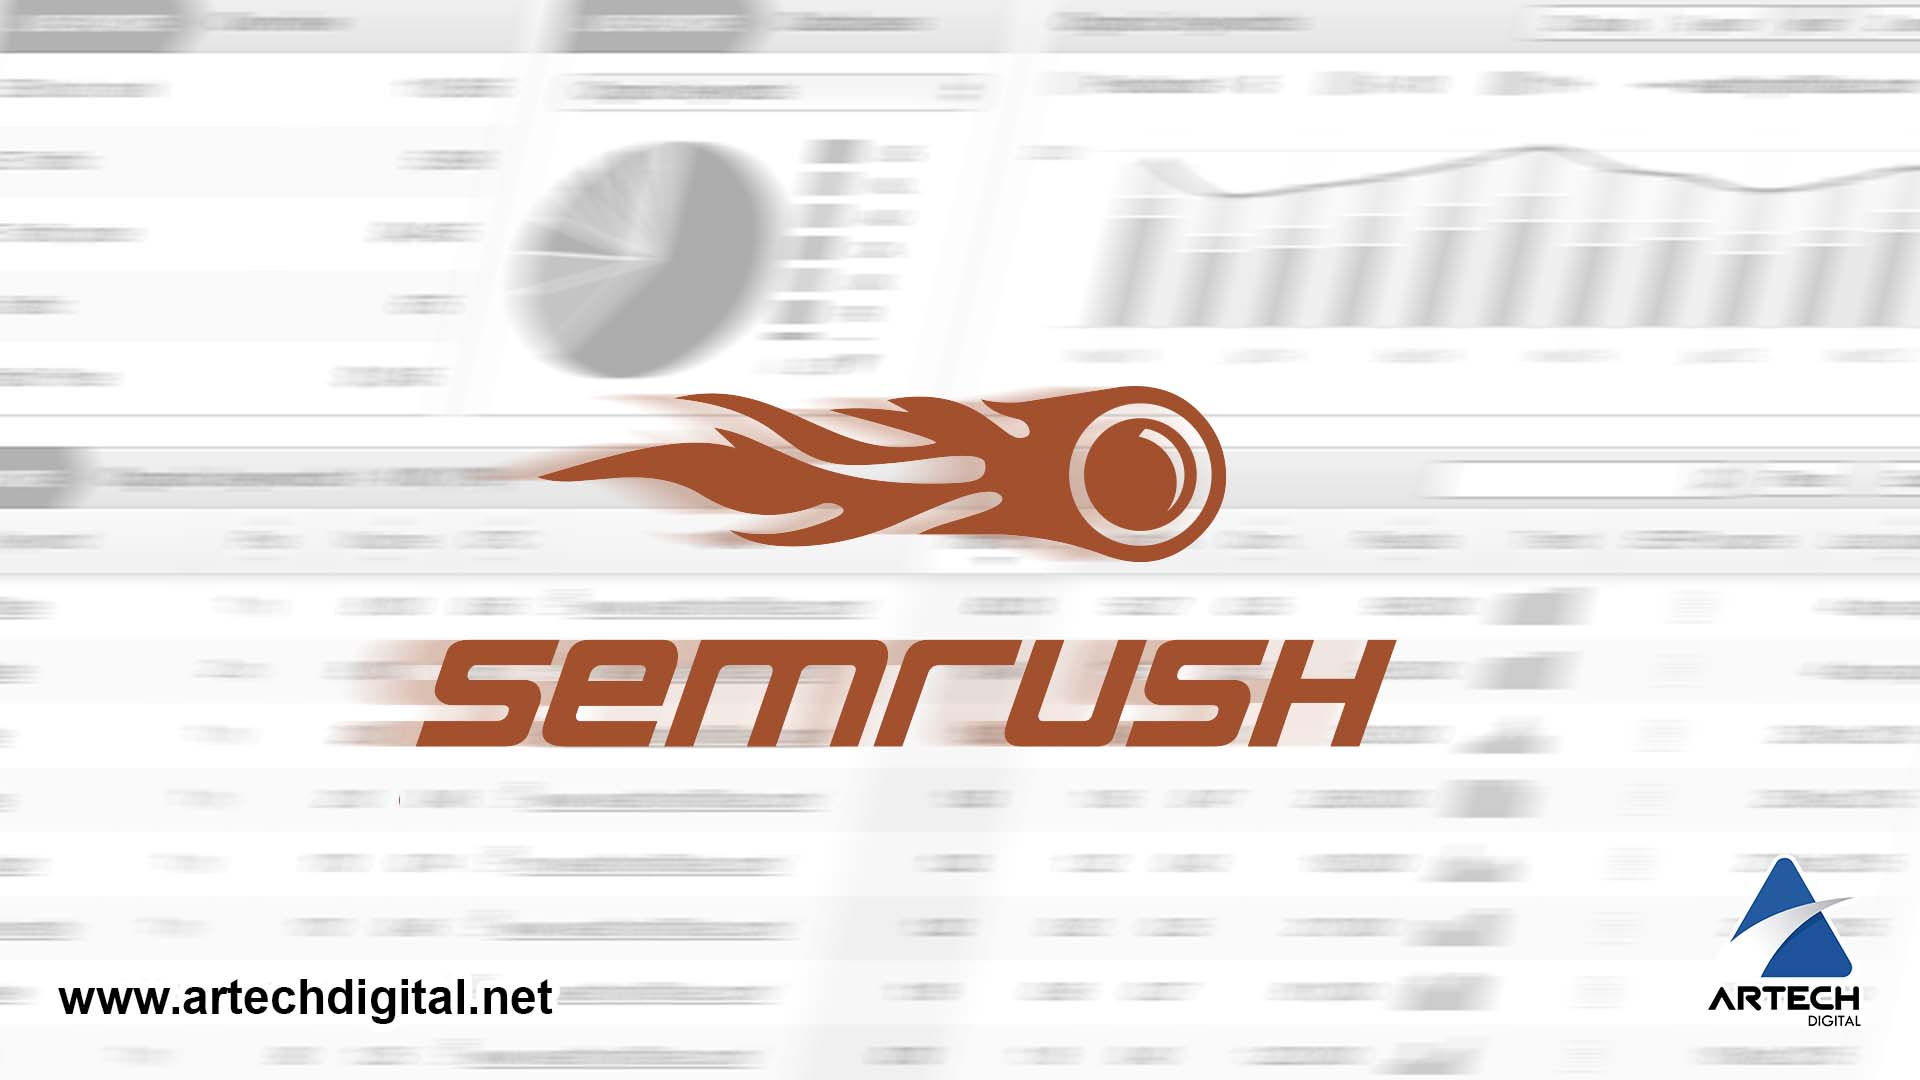 SEMrush - Artech Digital